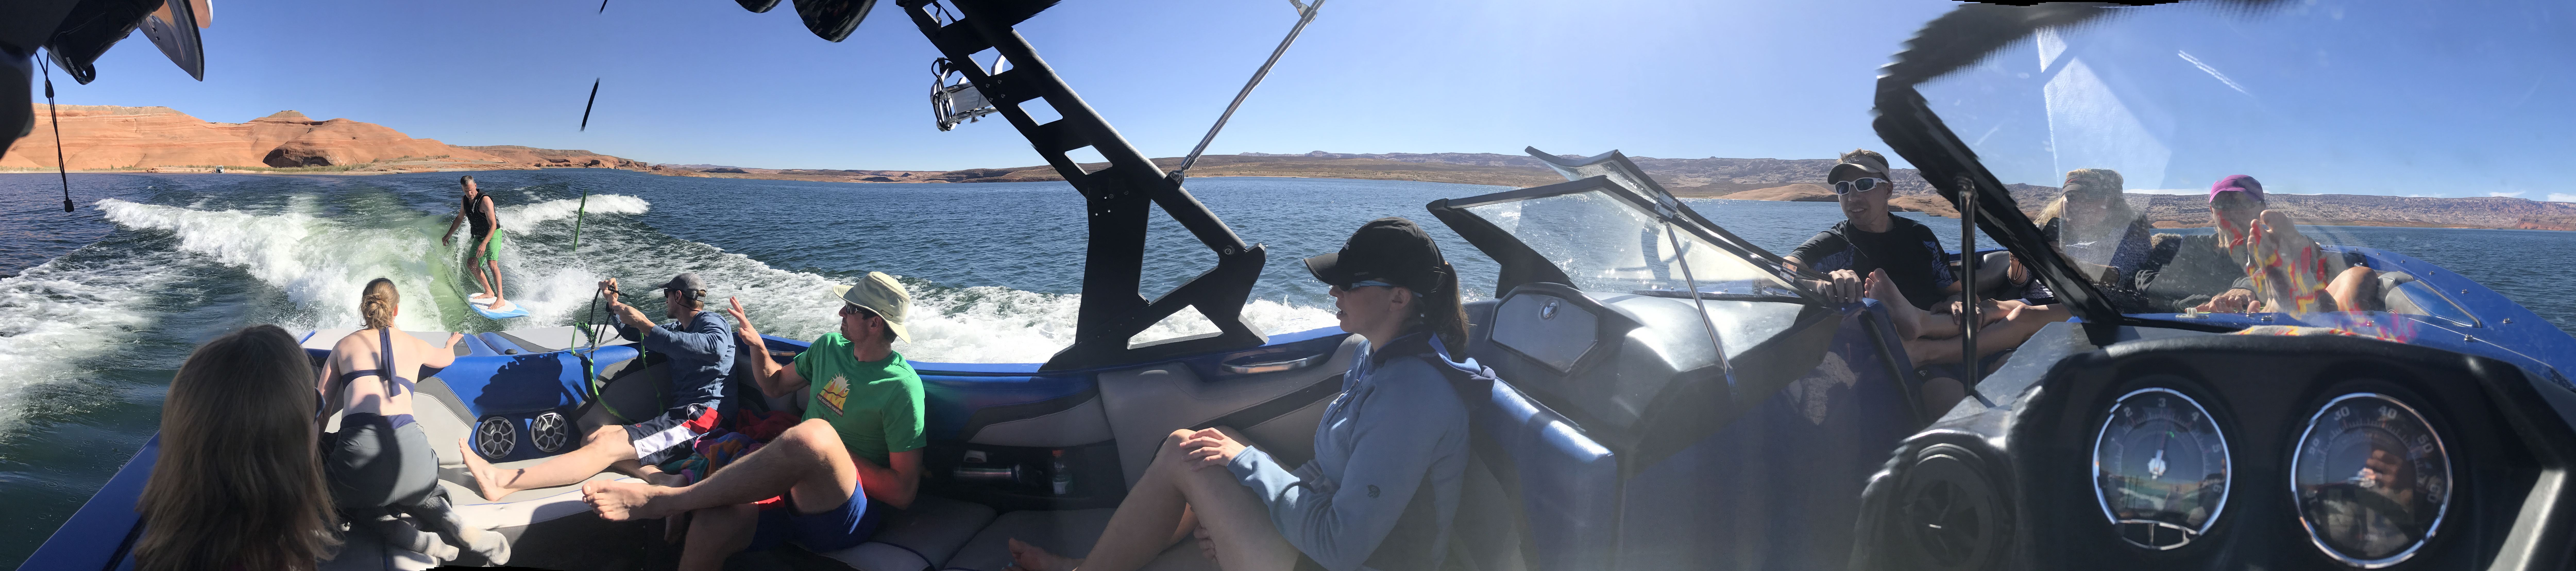 10 Lessons Learned From Buying a Wakeboat - The White Coat